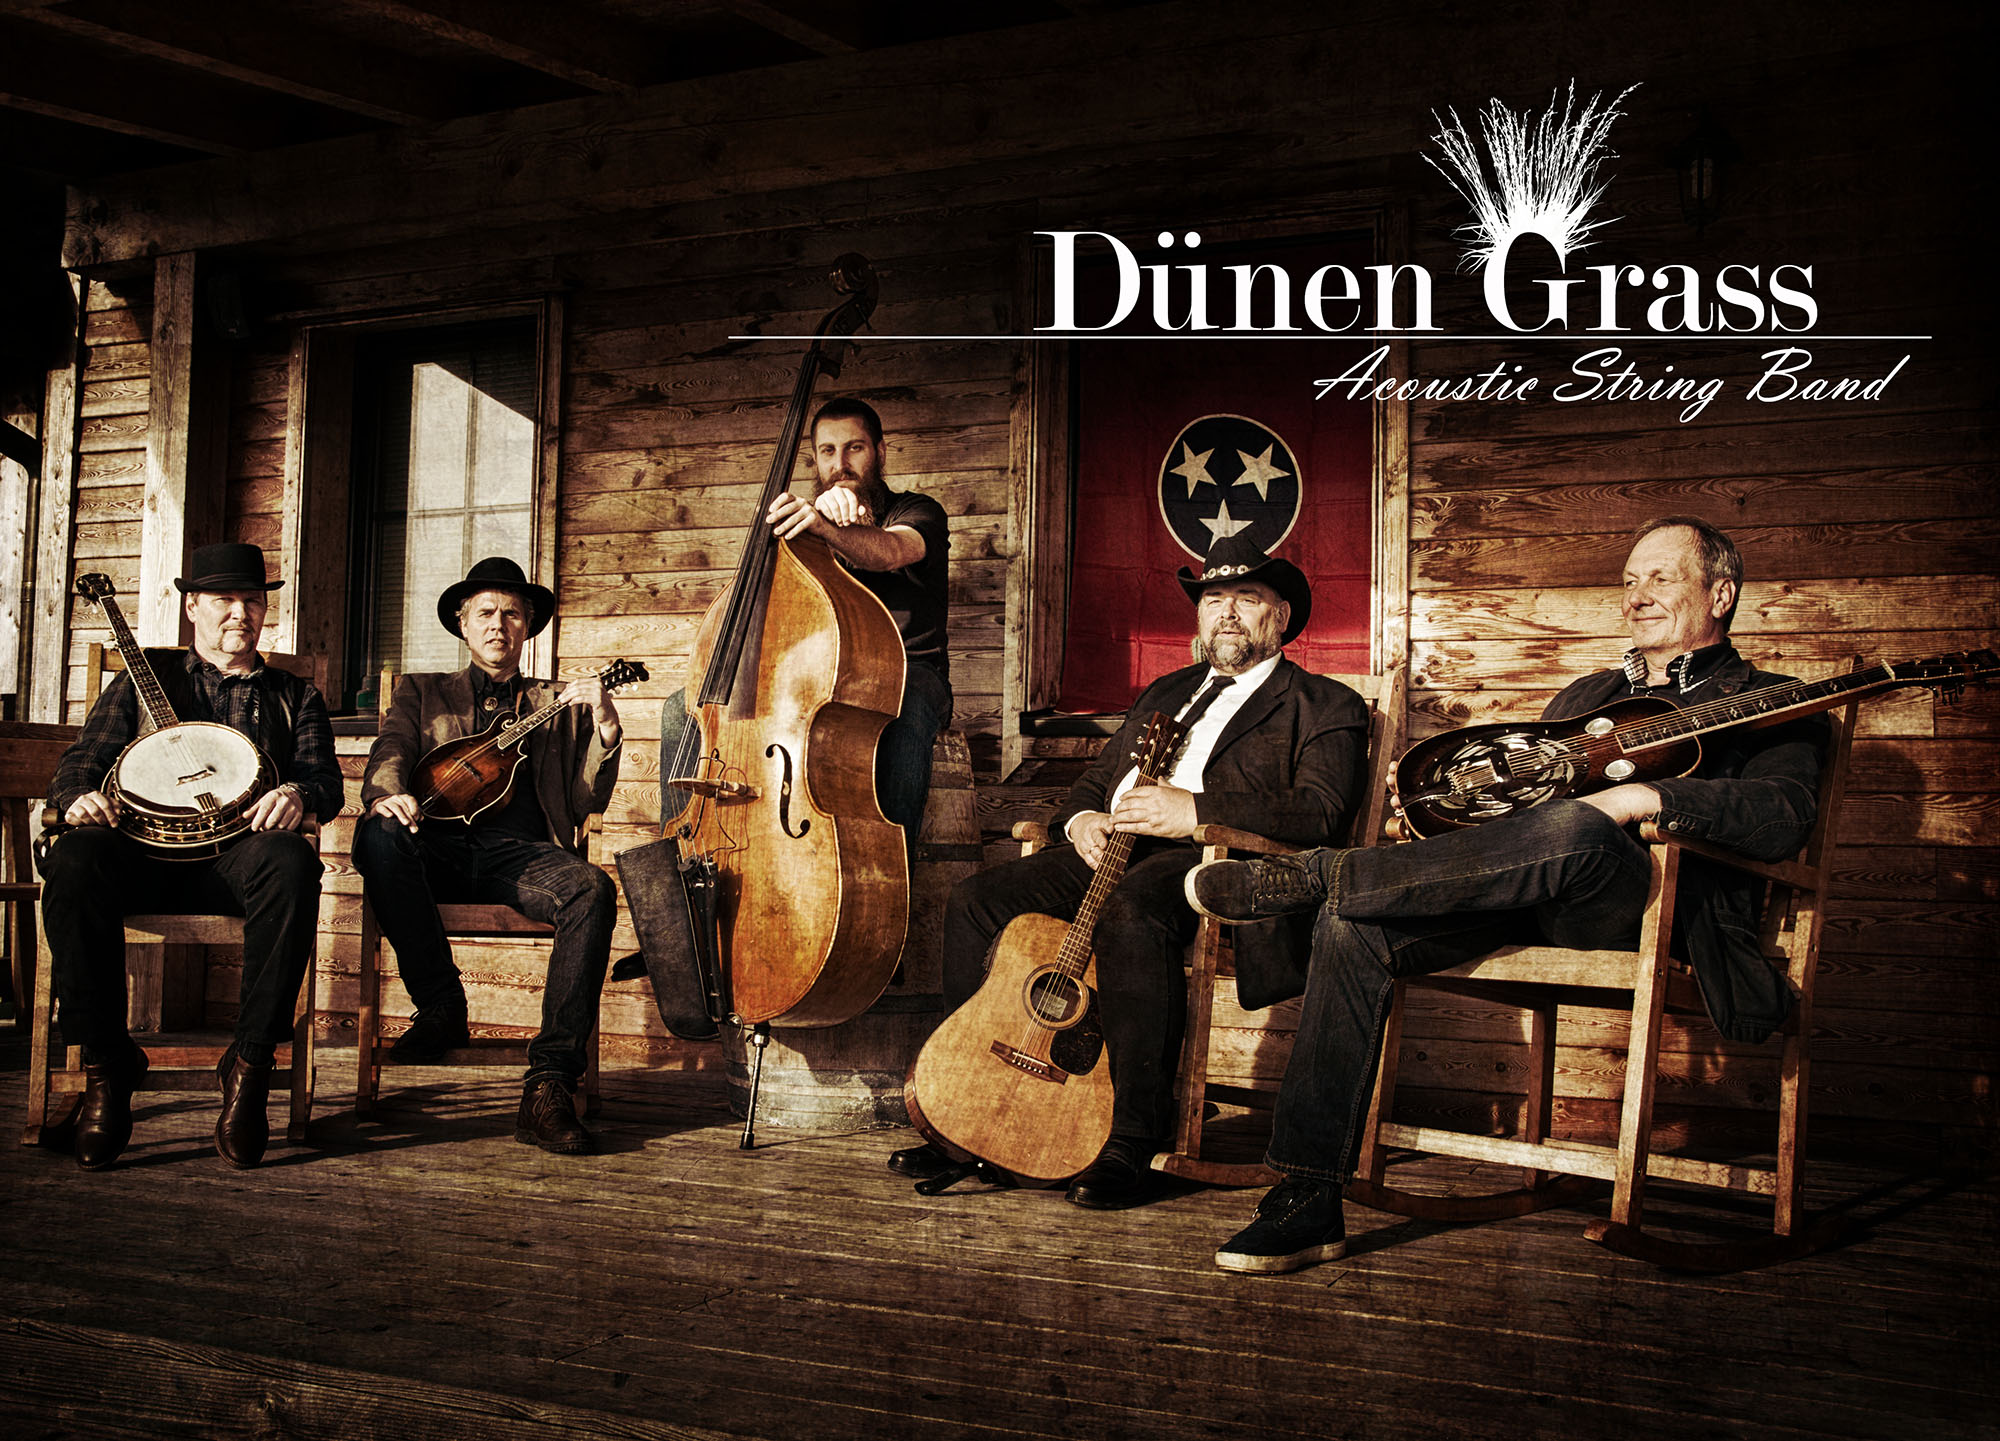 DünenGrass accoustic string band